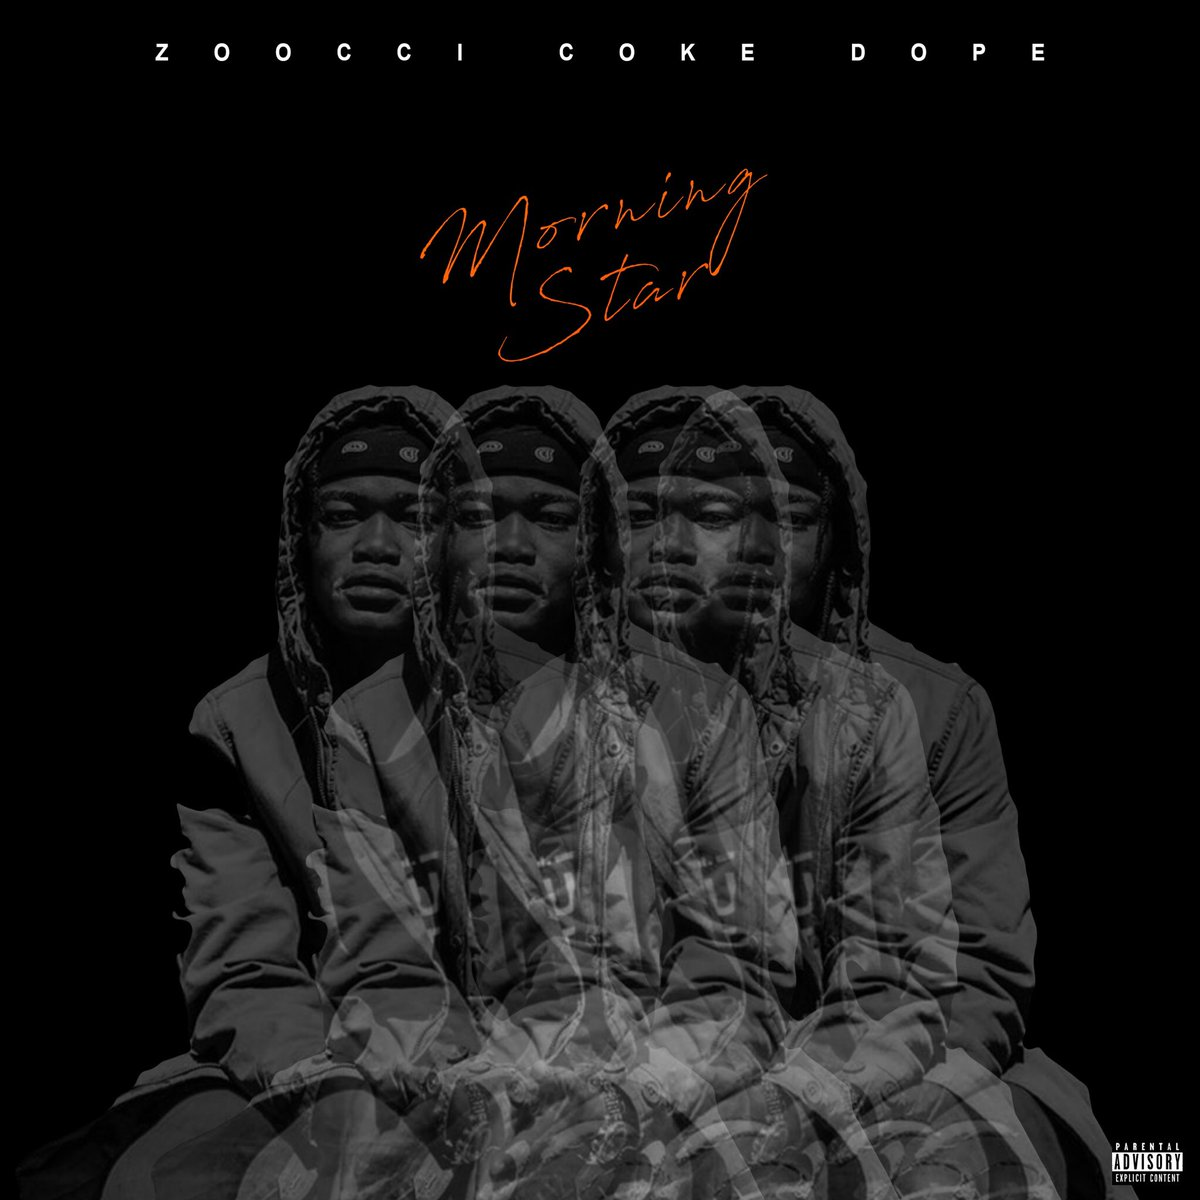 Zoocci Coke Dope Finally Drops 'Morning Star' Project [Listen/Download] DGEHy40XcAEnGp2